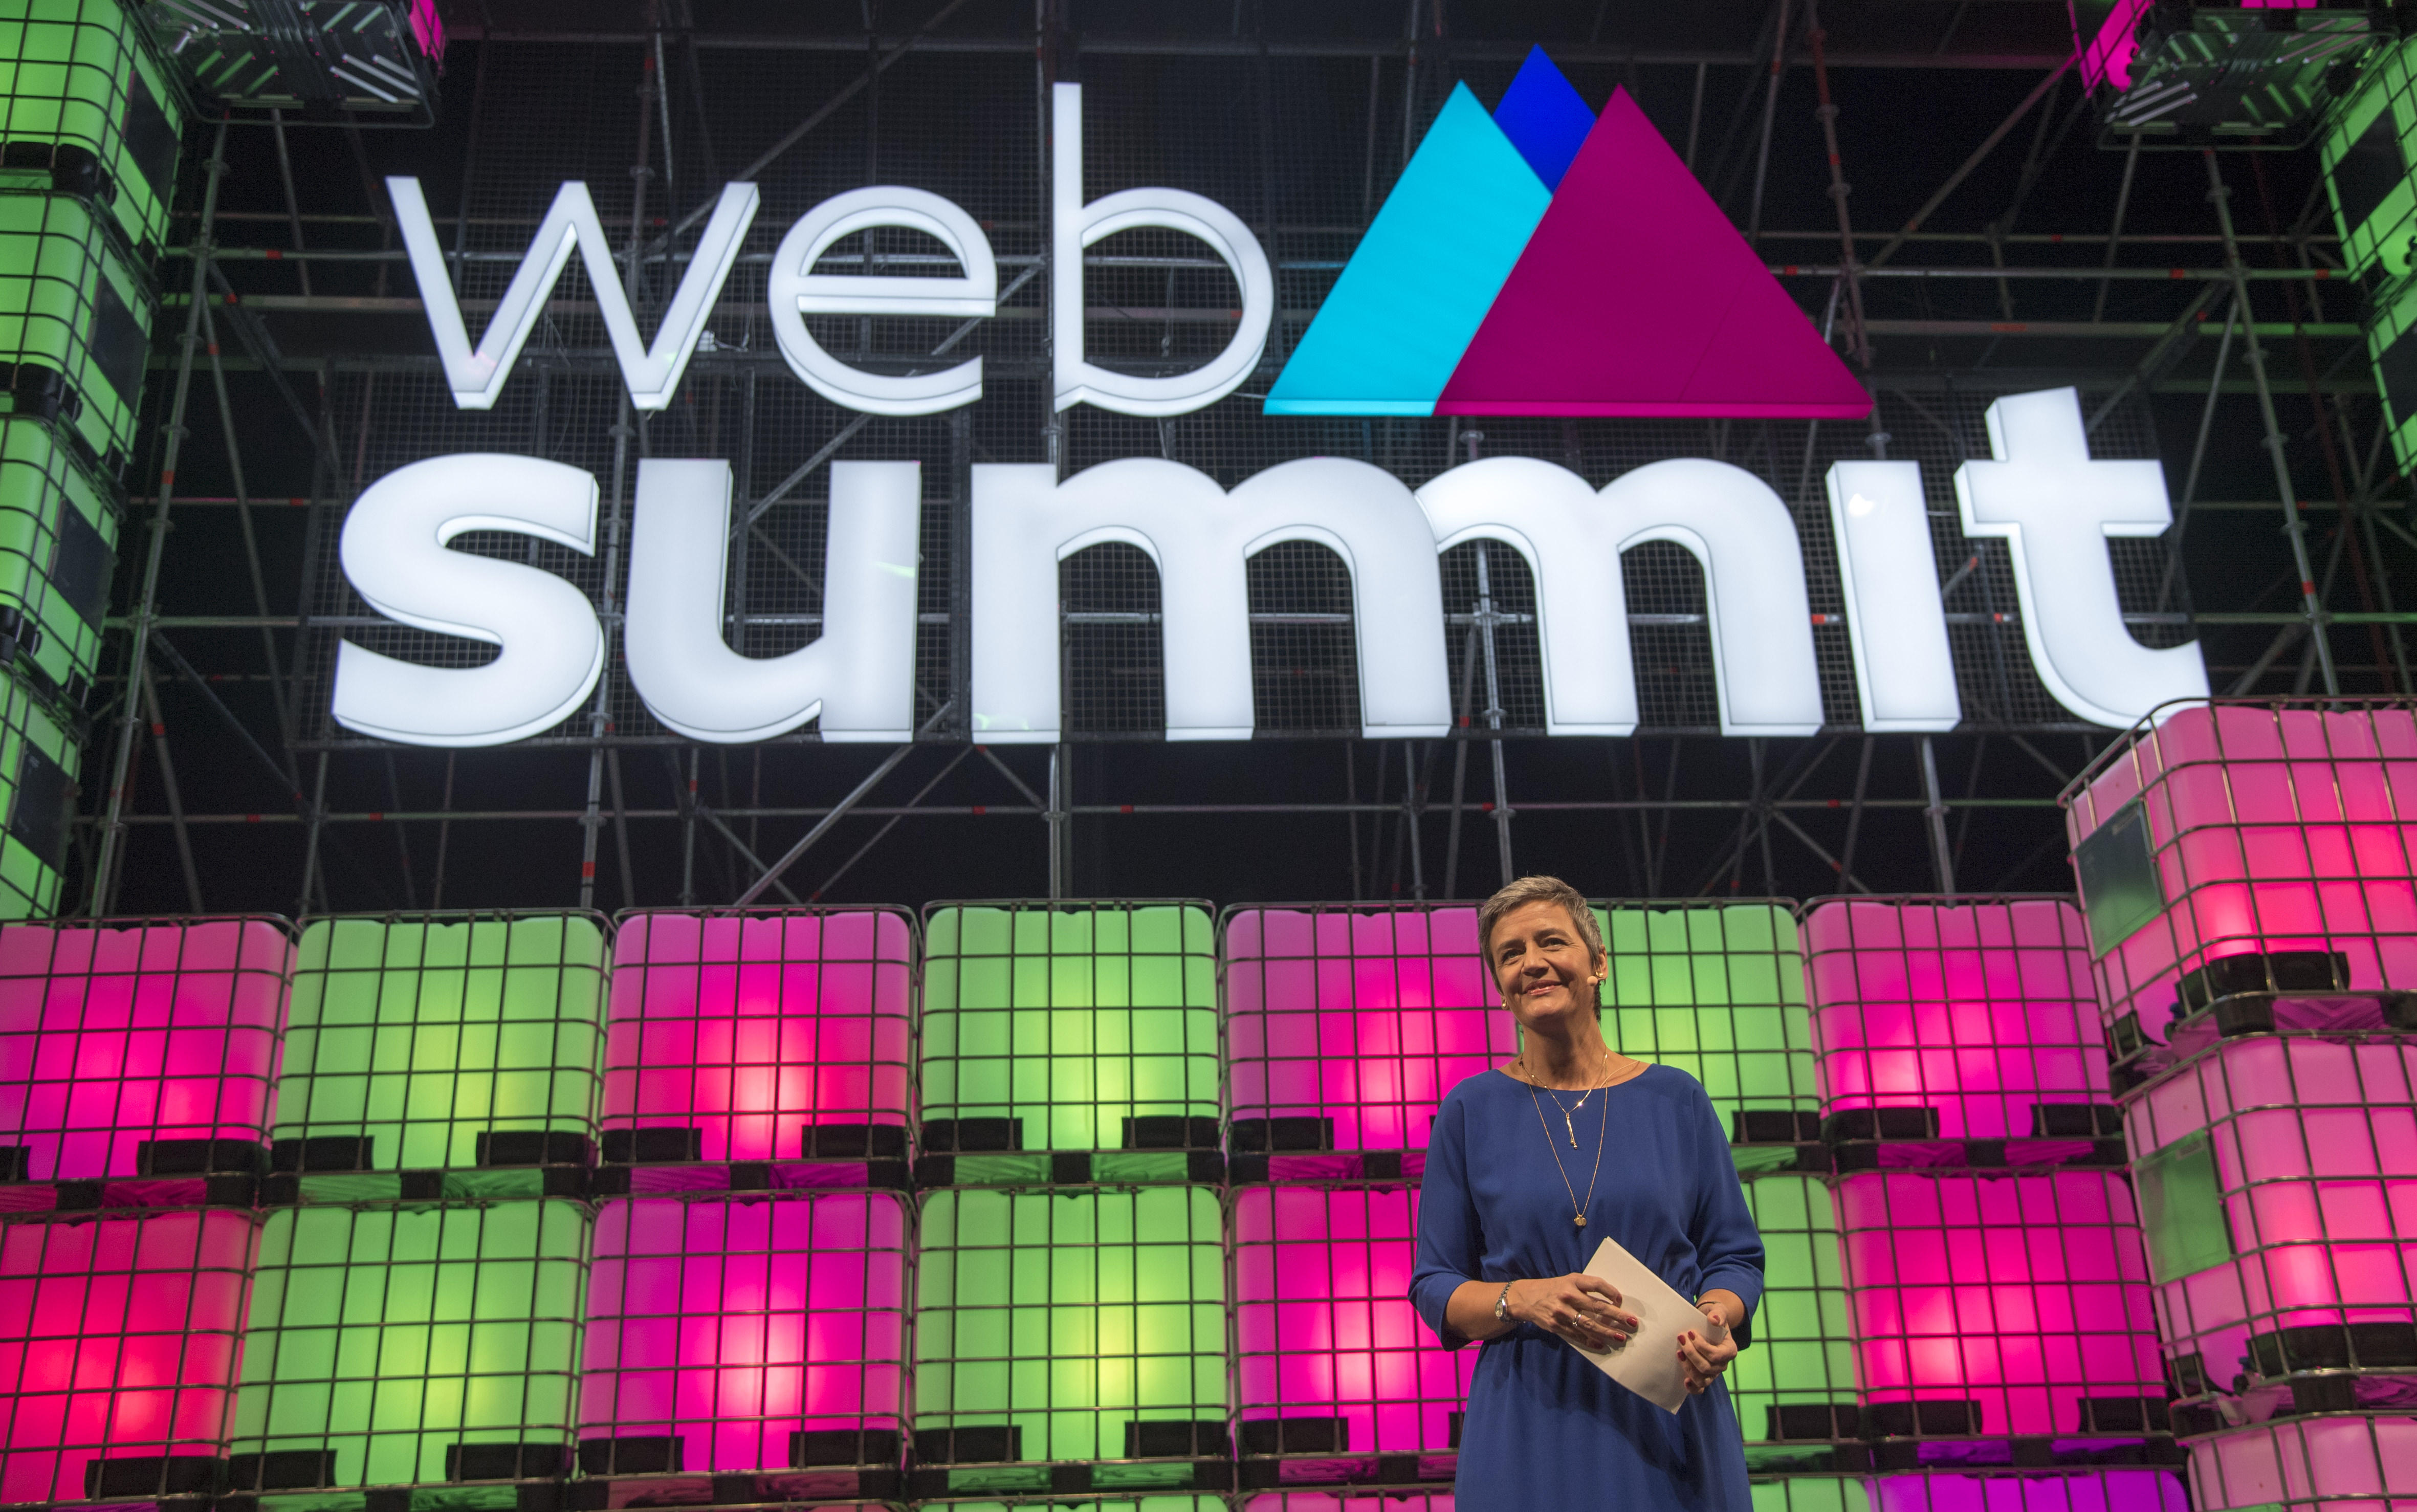 European Competition Commissioner Margrethe Vestager on stage at Web Summit in Lisbon, Portugal.